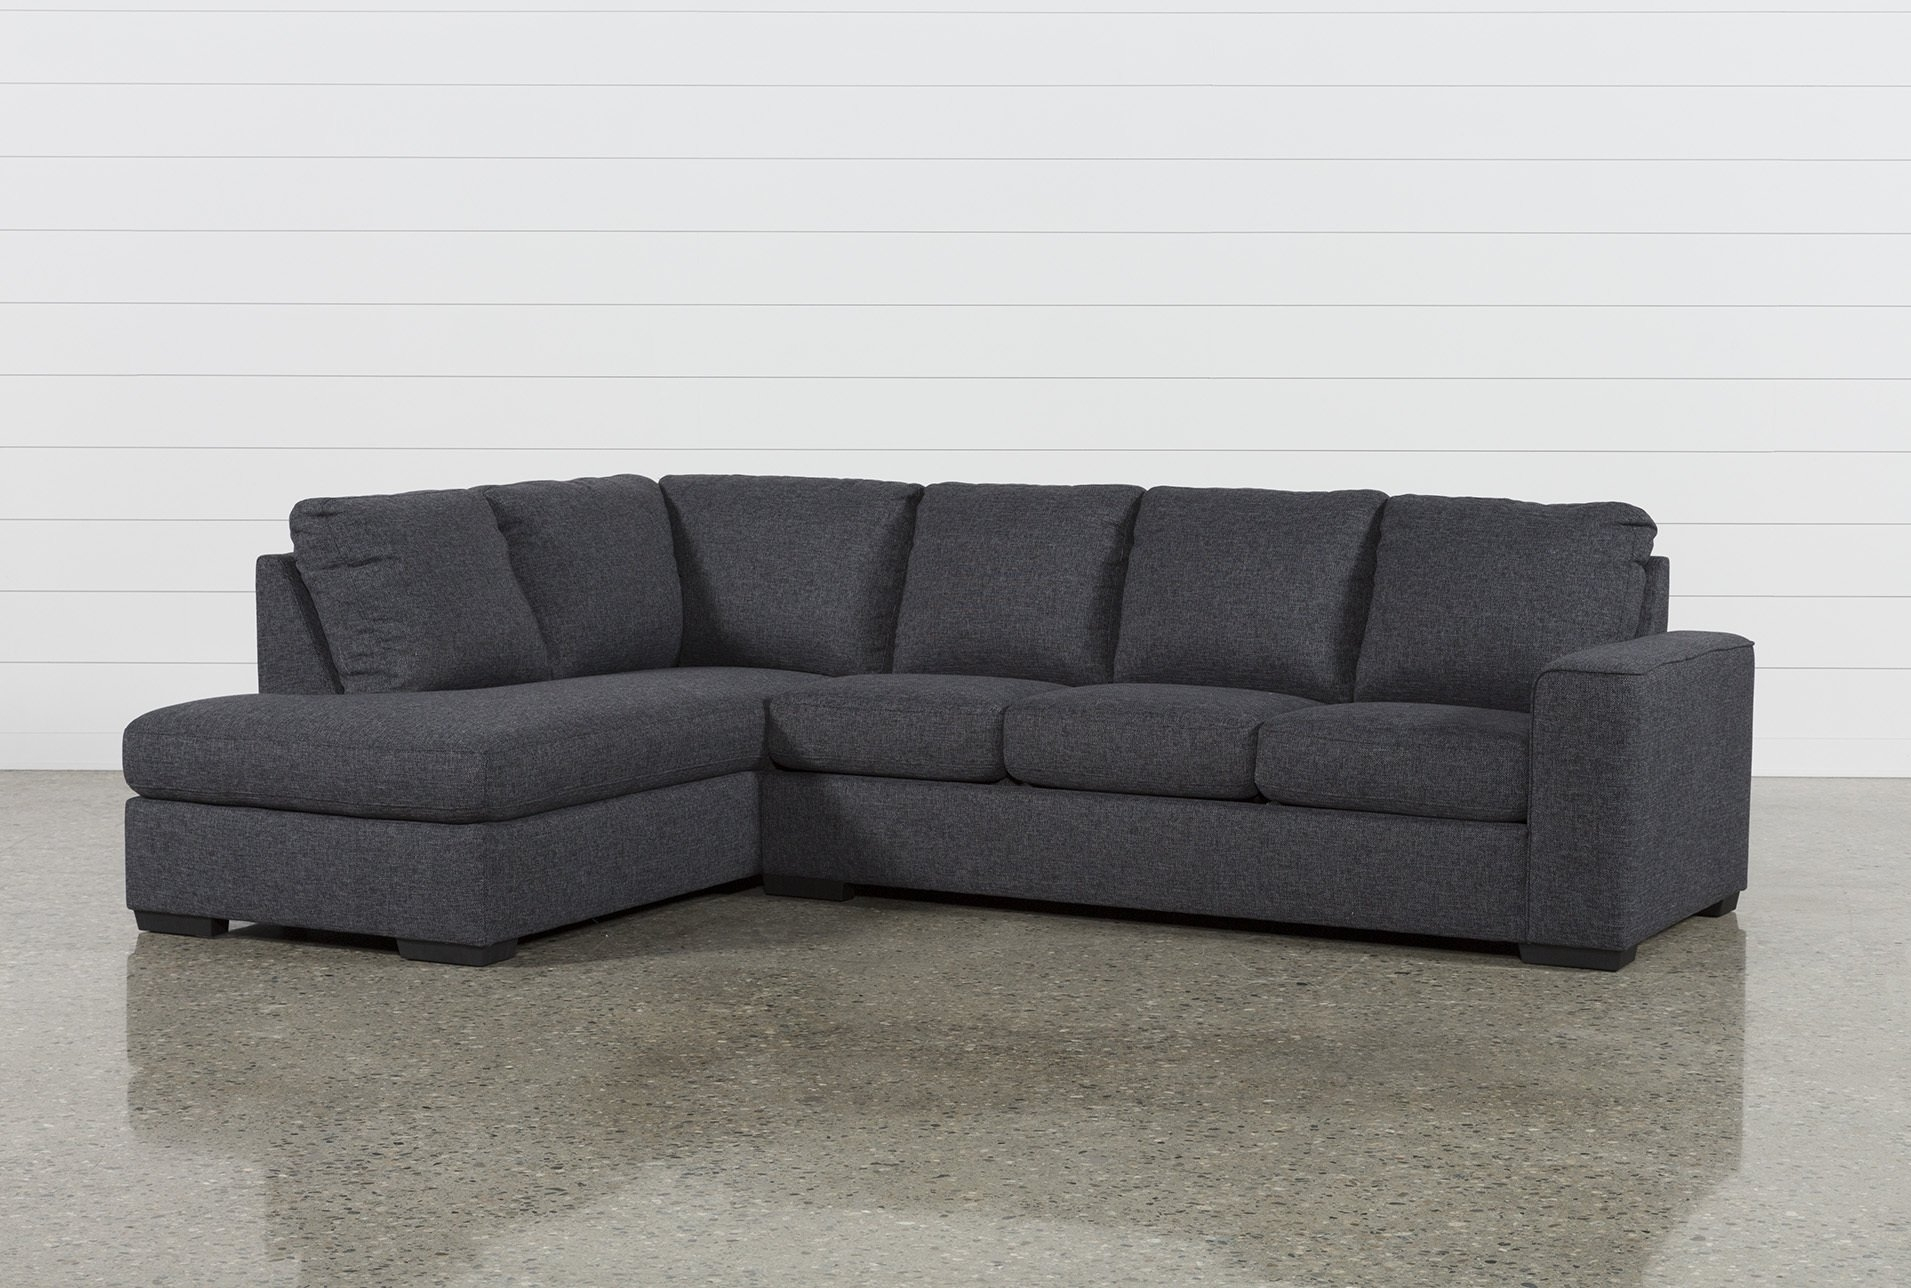 Lucy Dark Grey 2 Piece Sectional W/laf Chaise | Dark Grey And Products regarding Aspen 2 Piece Sleeper Sectionals With Raf Chaise (Image 22 of 30)